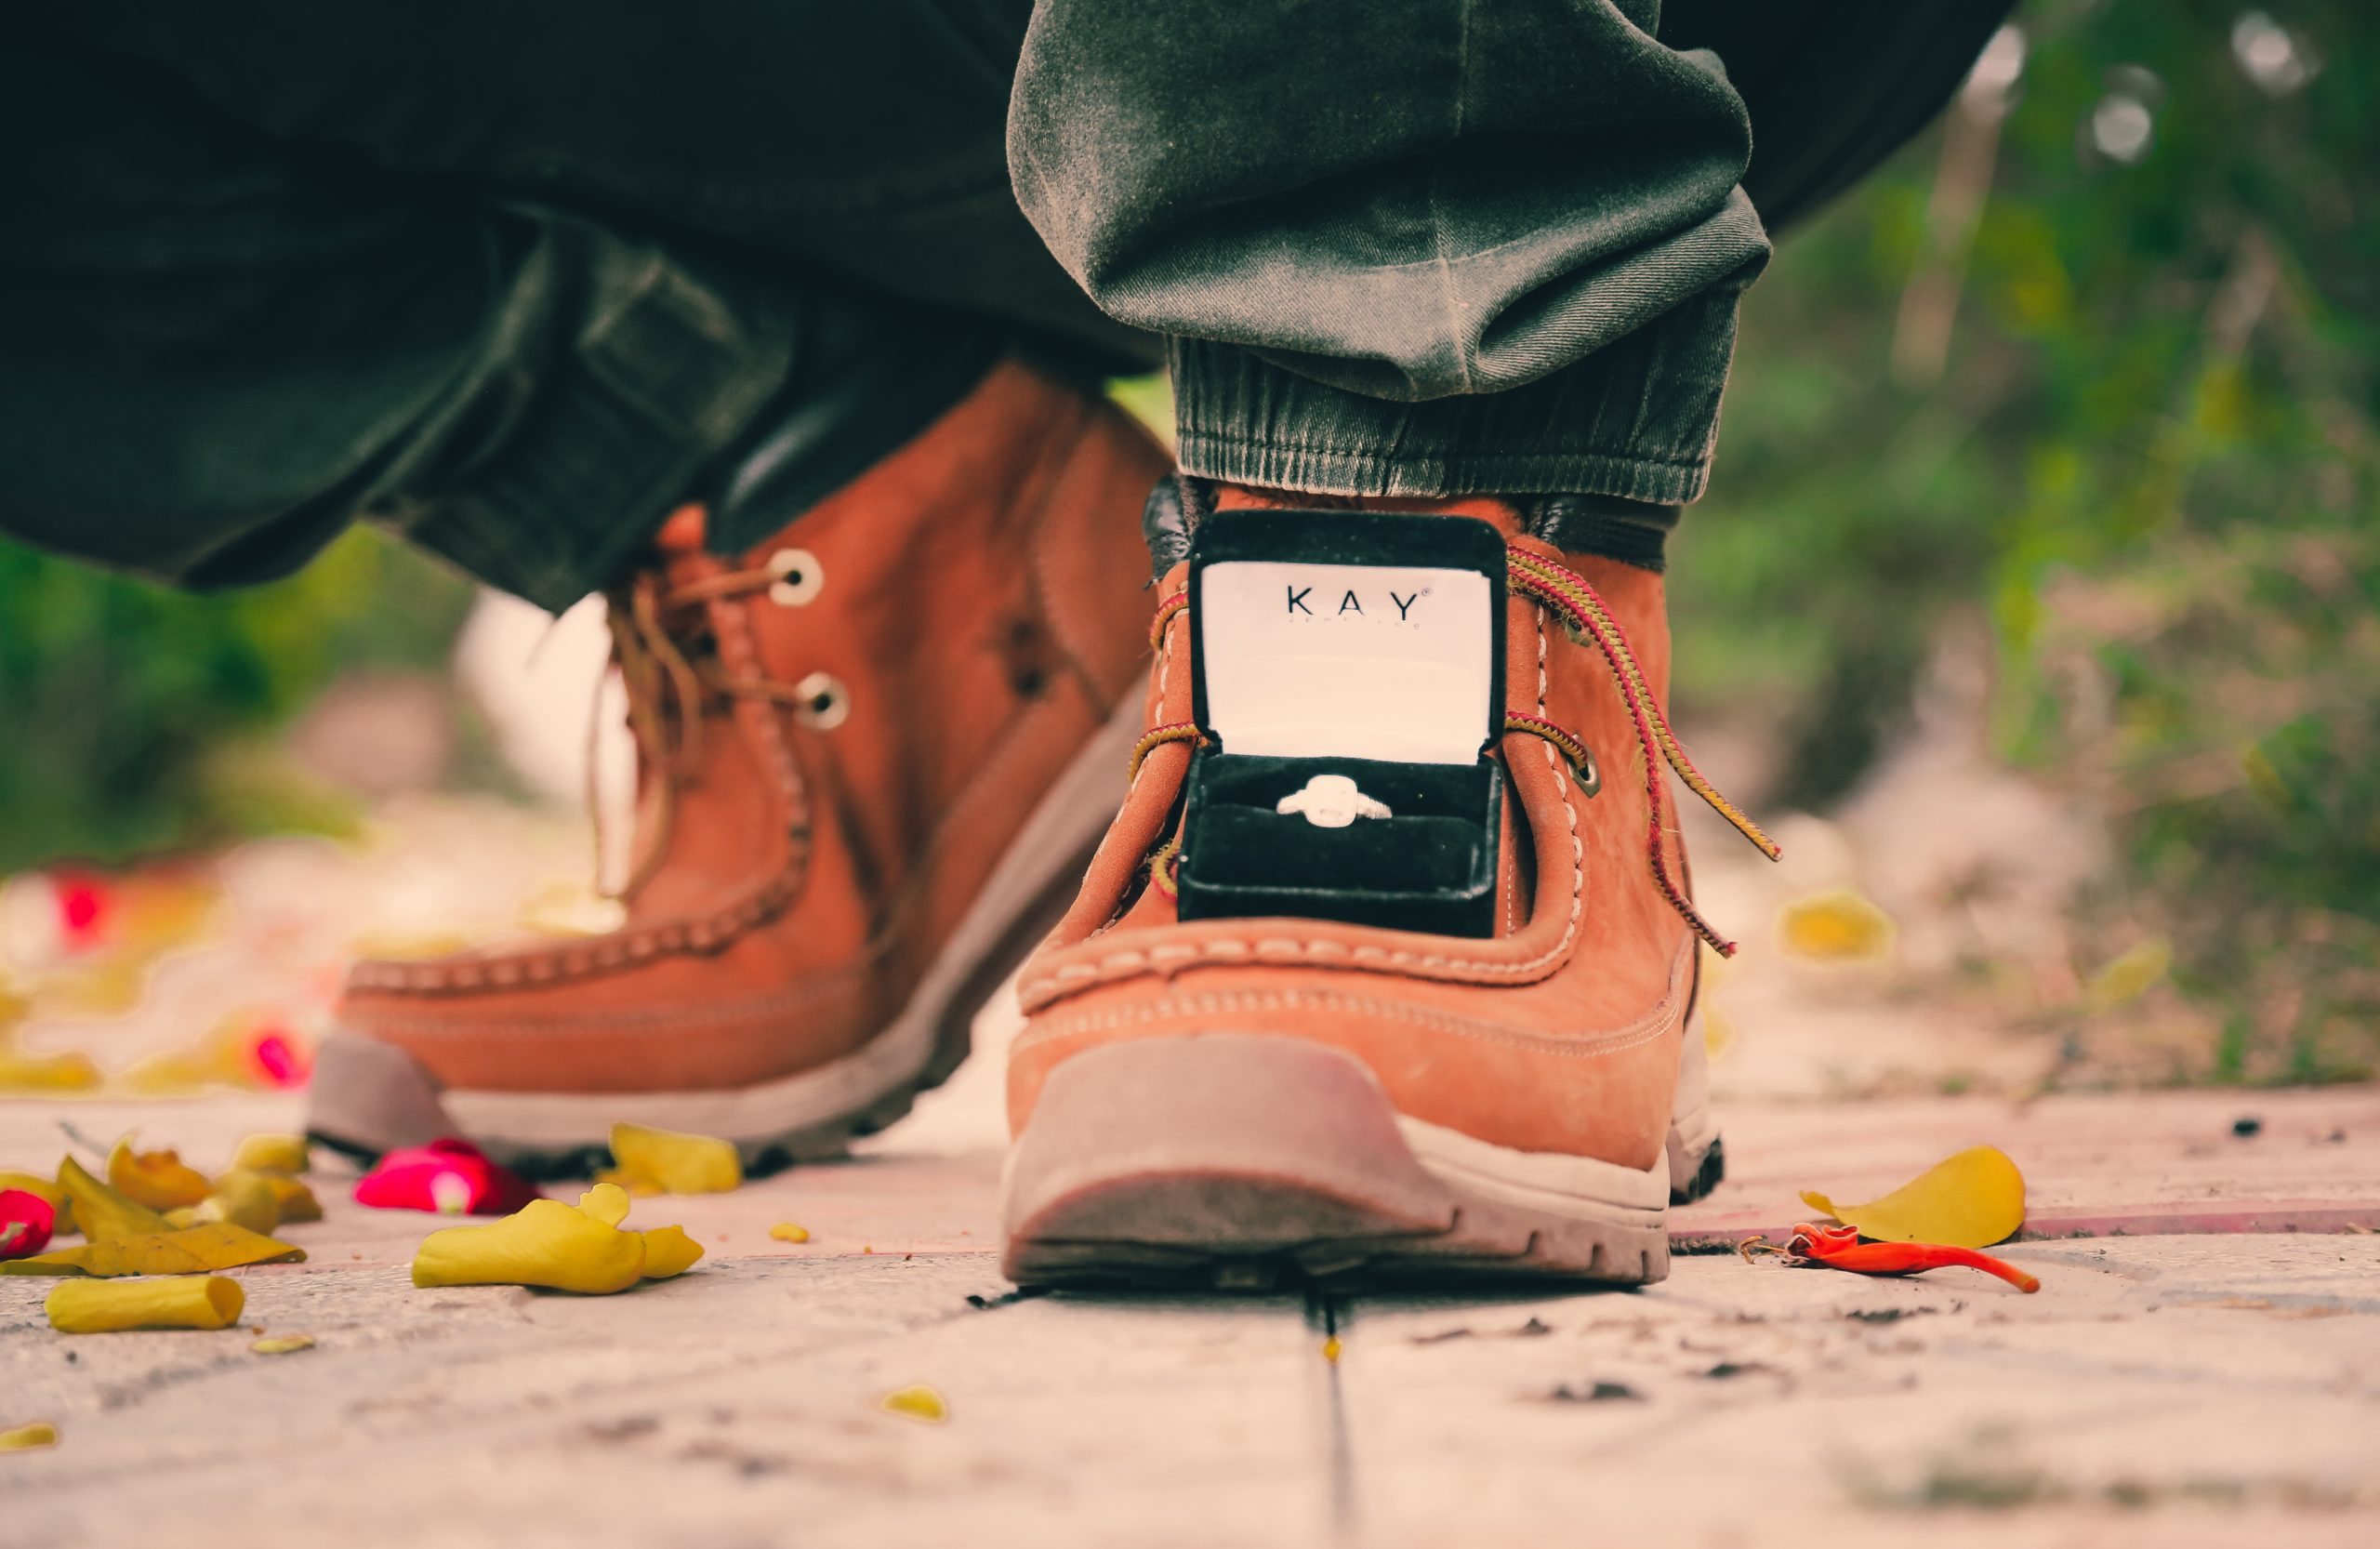 6 Creative Ways To Propose